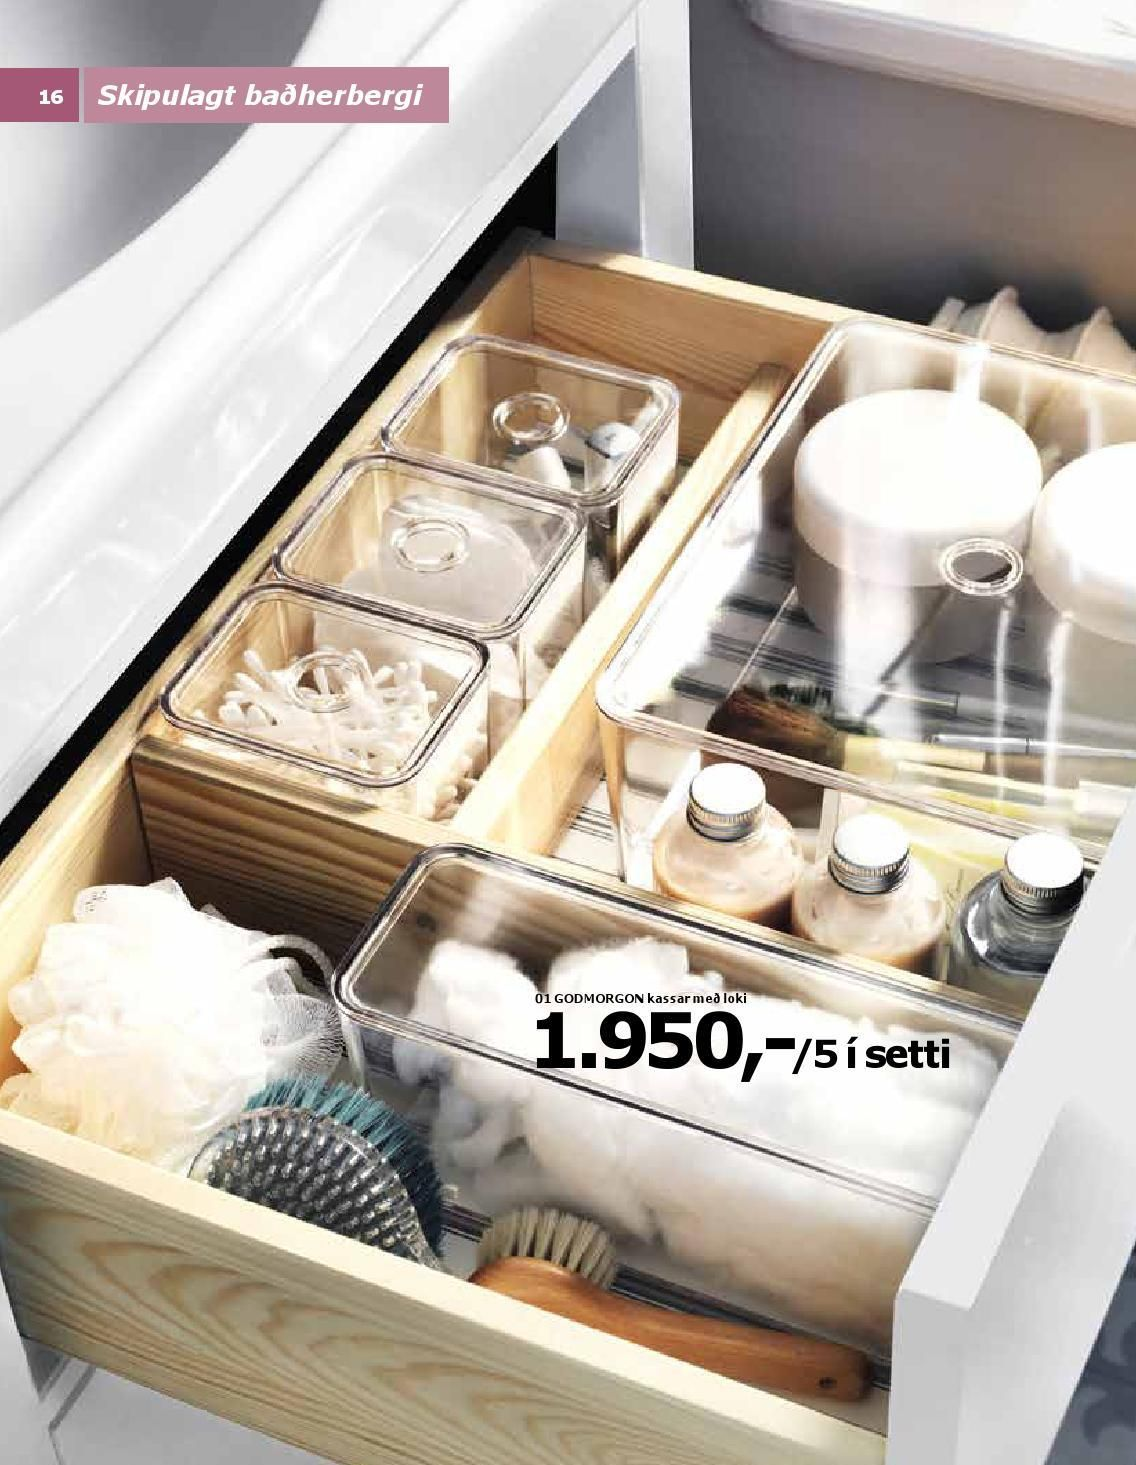 Ikea Badherbergi 2015 Bathroom Organisation Ikea Bathroom Bathroom Drawer Organization